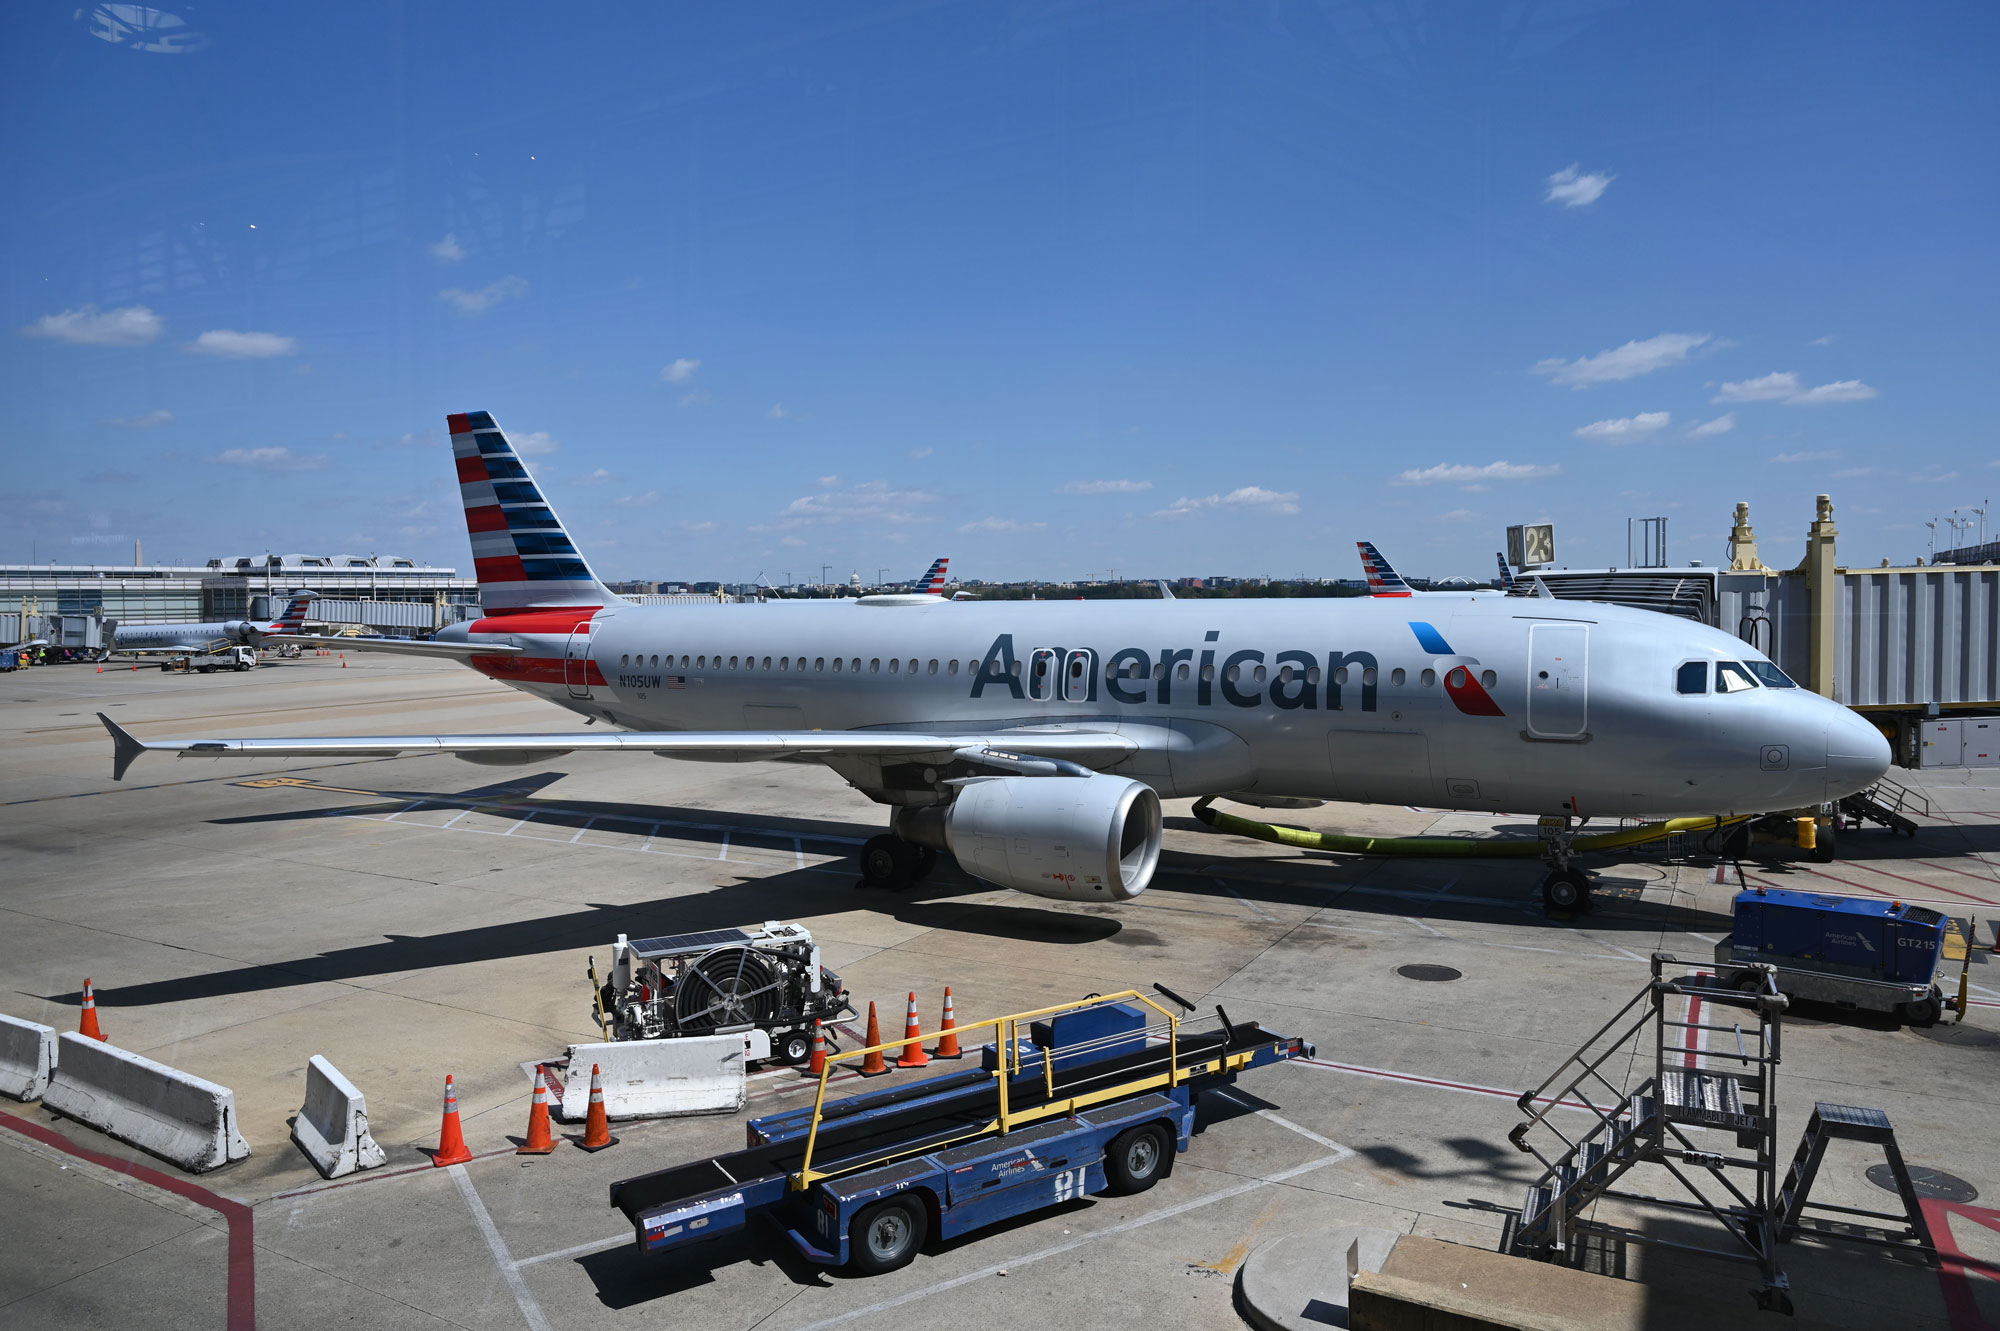 An American Airlines airplane is seen at gate at Washington National Airport (DCA) on April 11, in Arlington, Virginia.